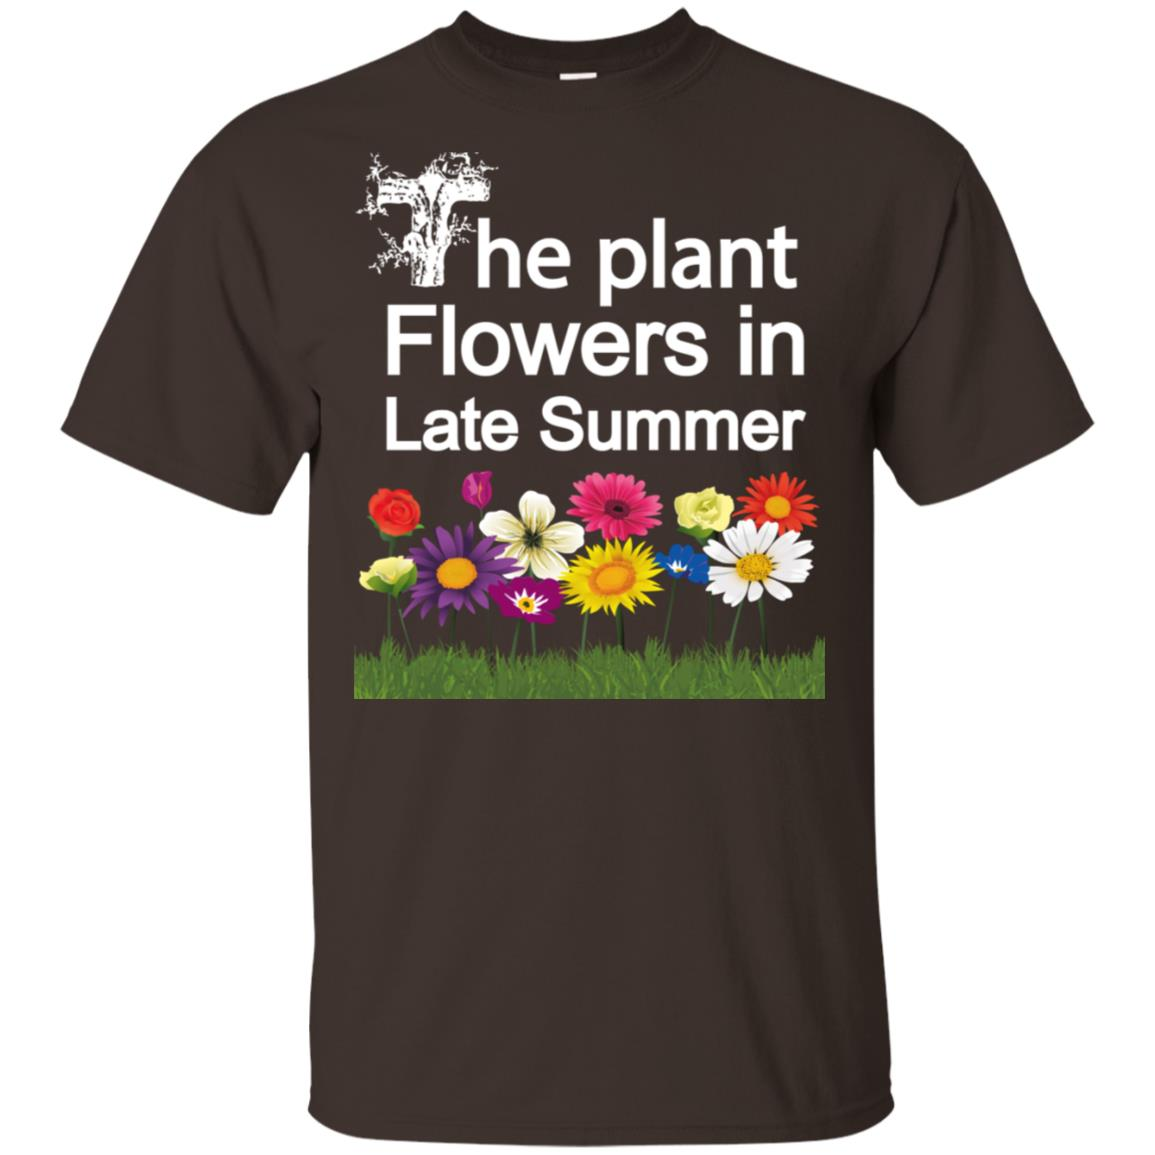 Gardening The Plant Flowers in Late Summer Tee Unisex Short Sleeve